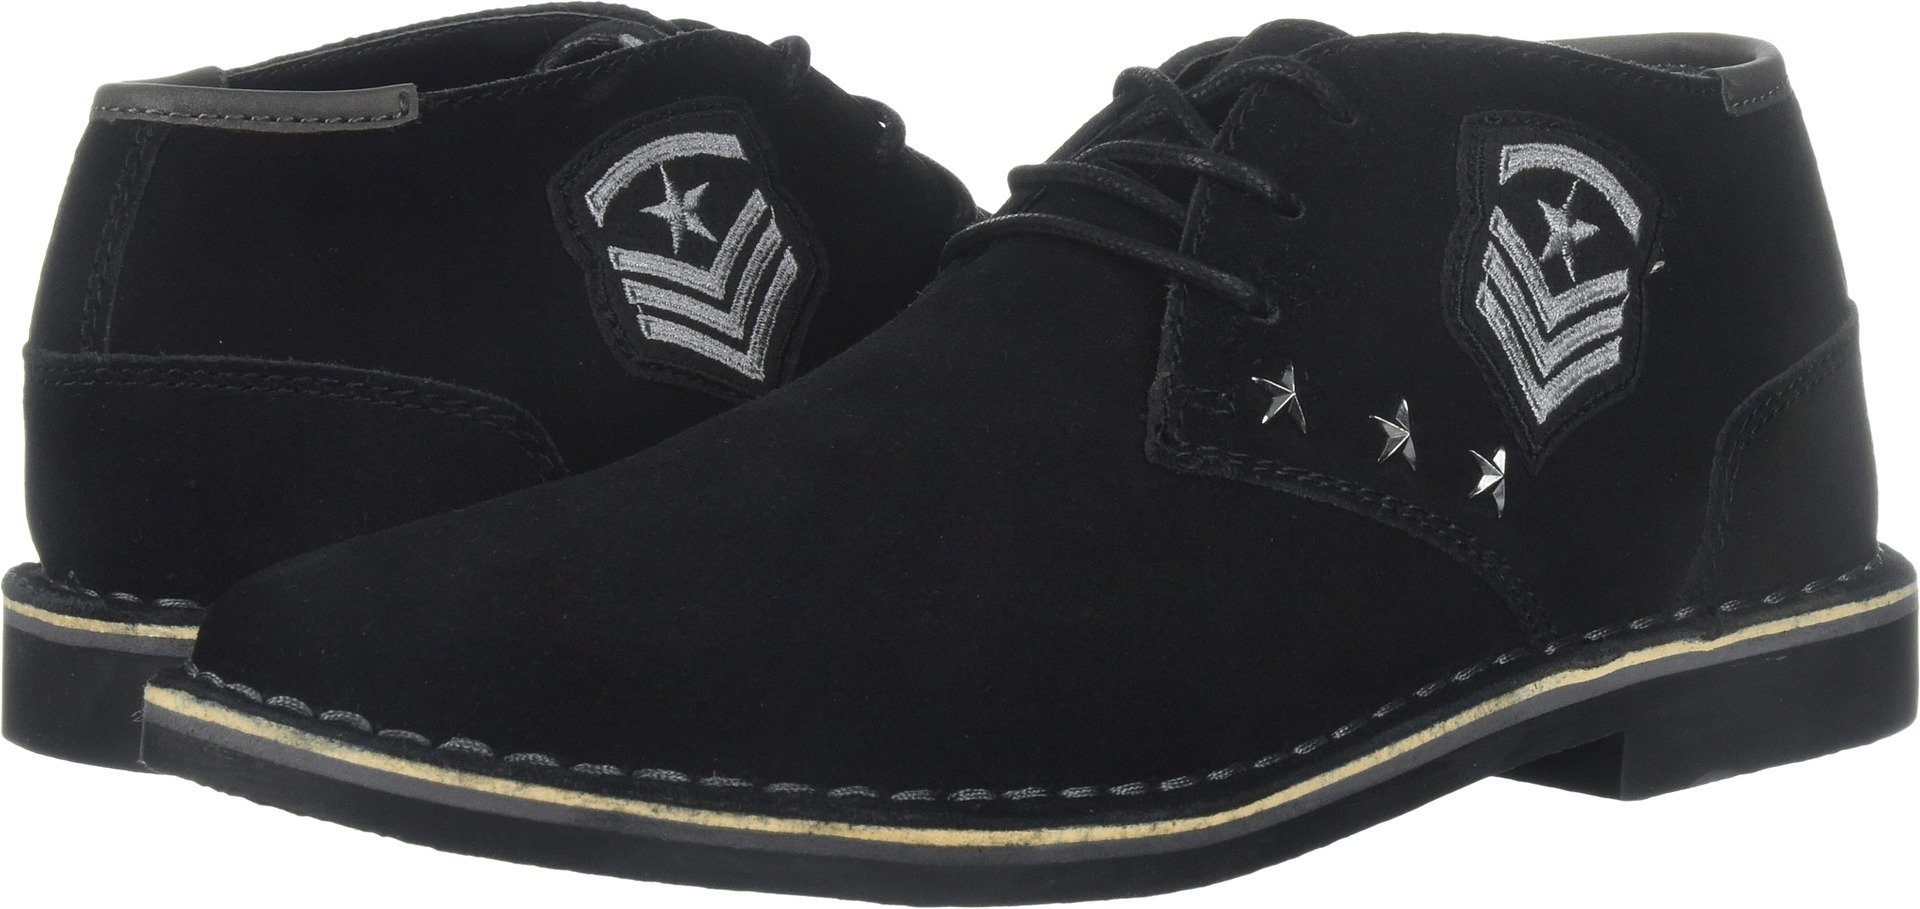 Kenneth Cole REACTION Men's Desert Sun Chukka Boot,Black Suede,11.5 M US